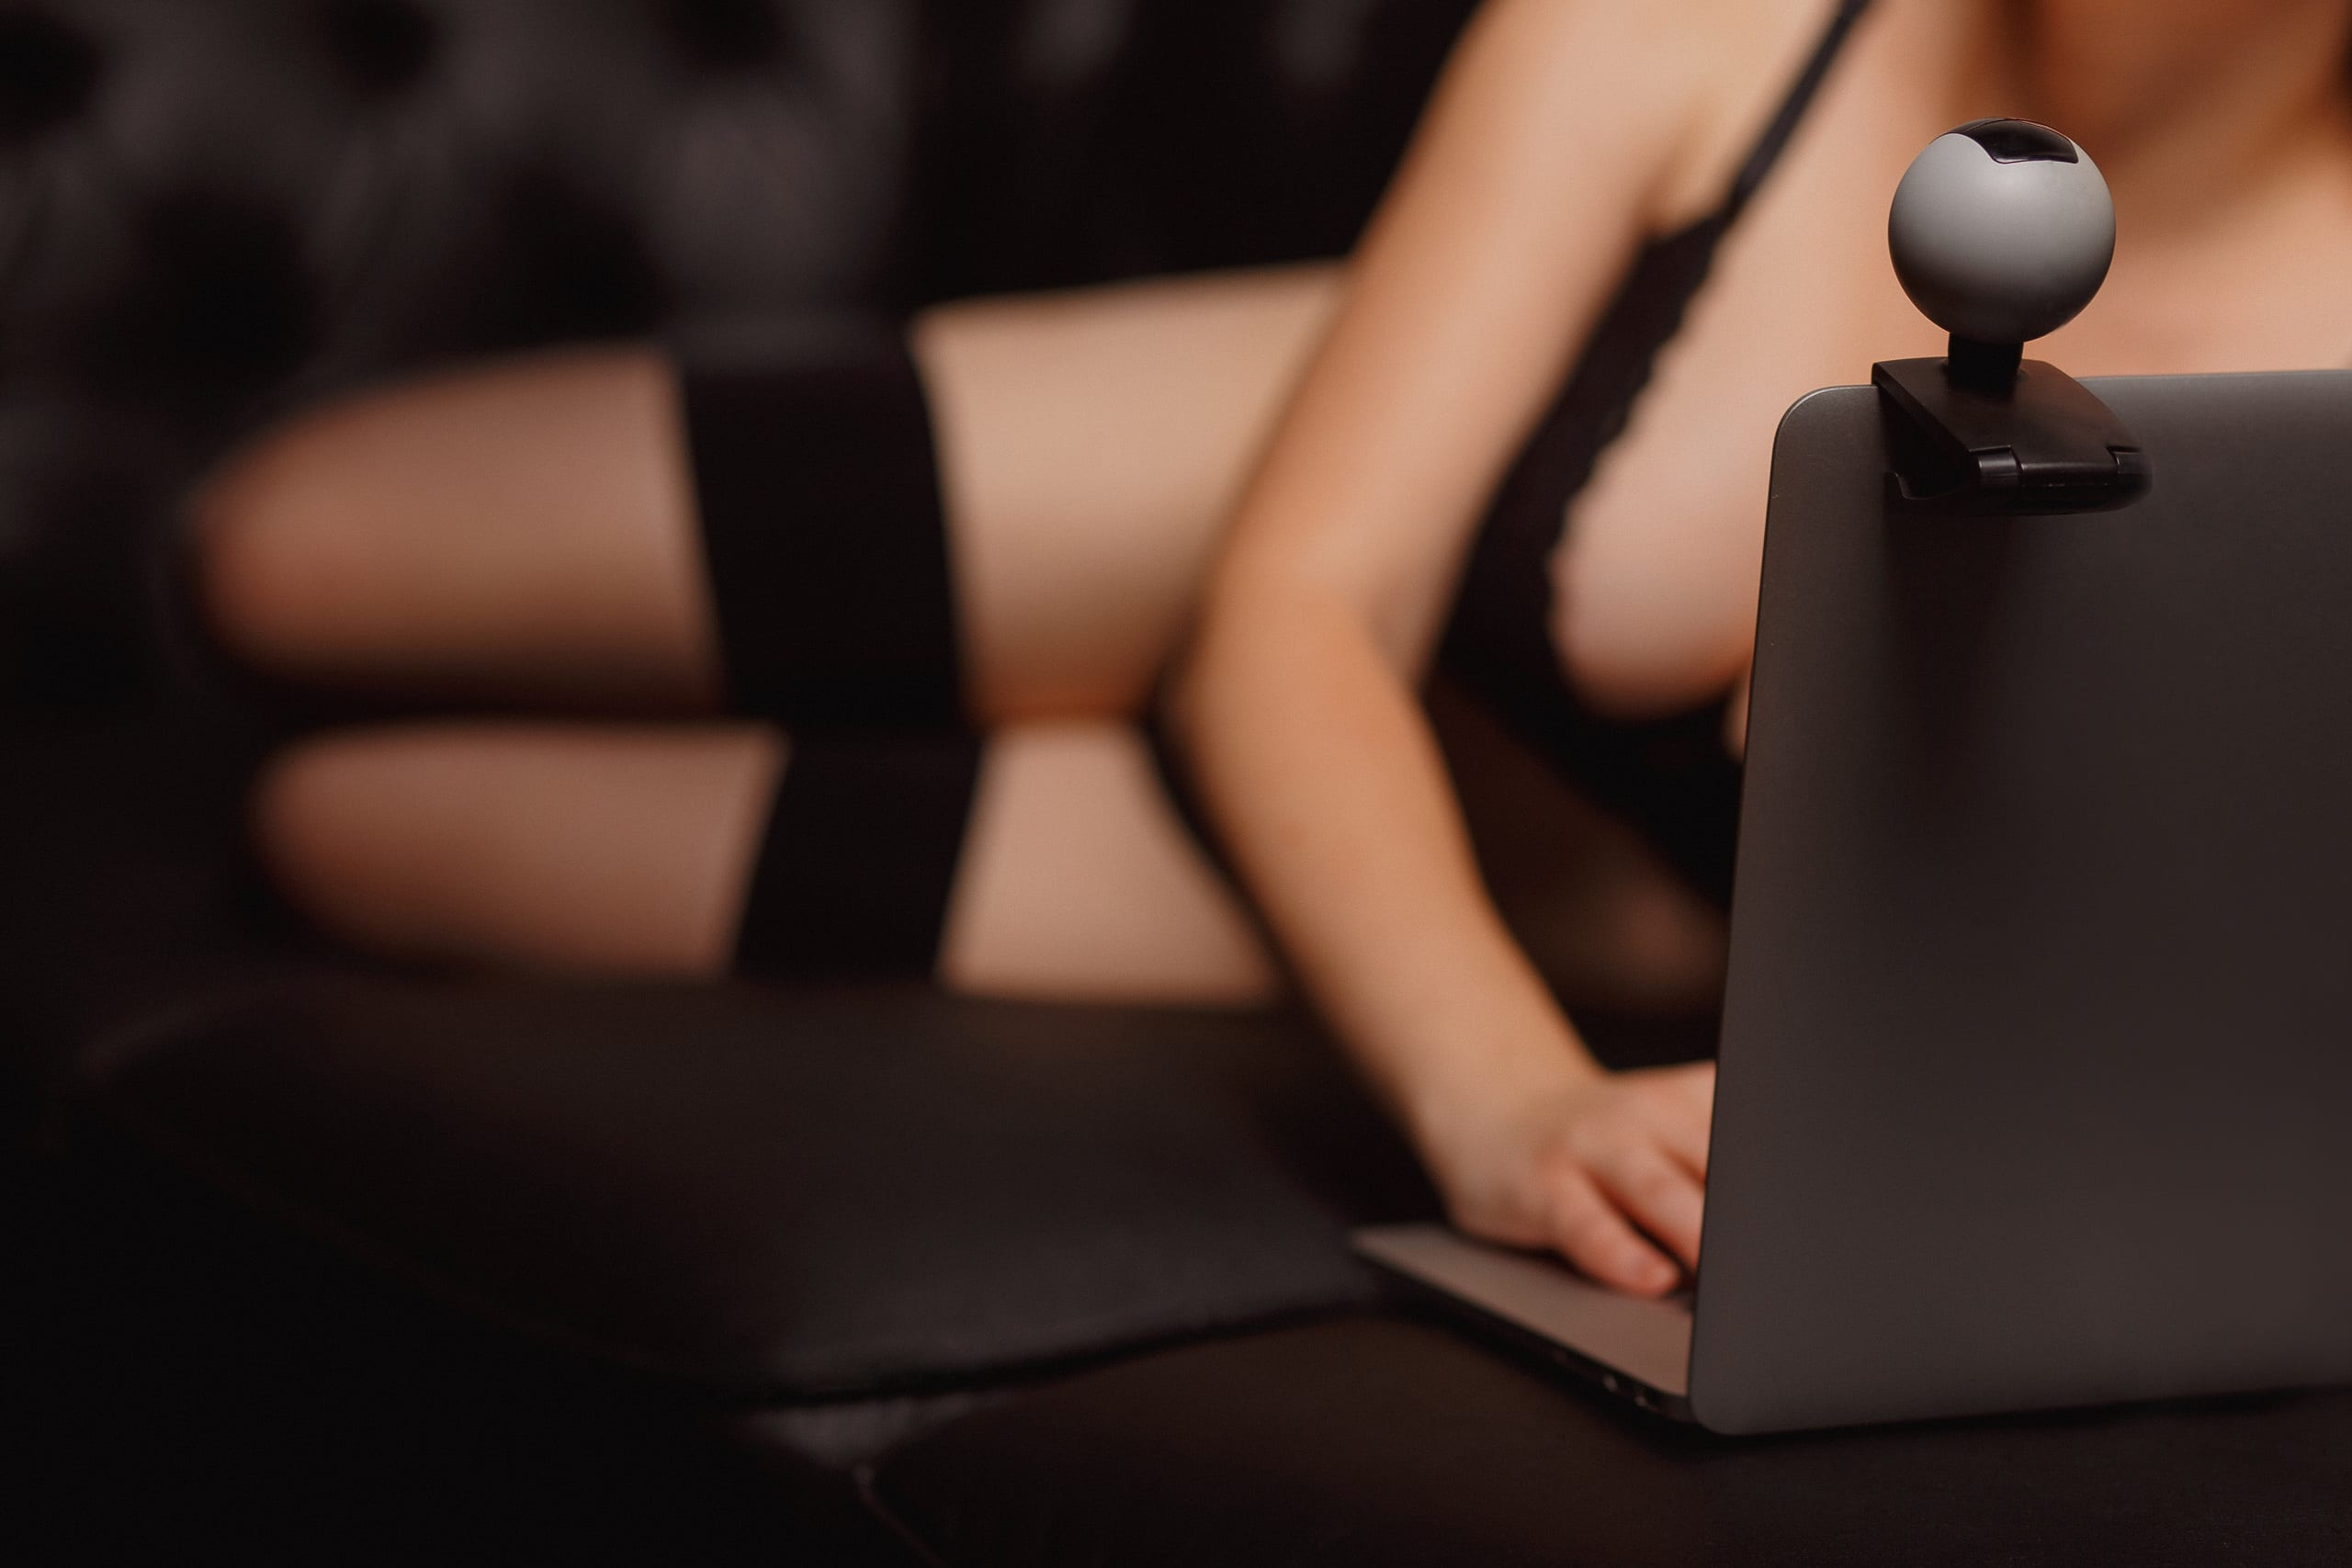 Woman working as Internet webcam model. Shows breasts. Concept virtual sex chat.